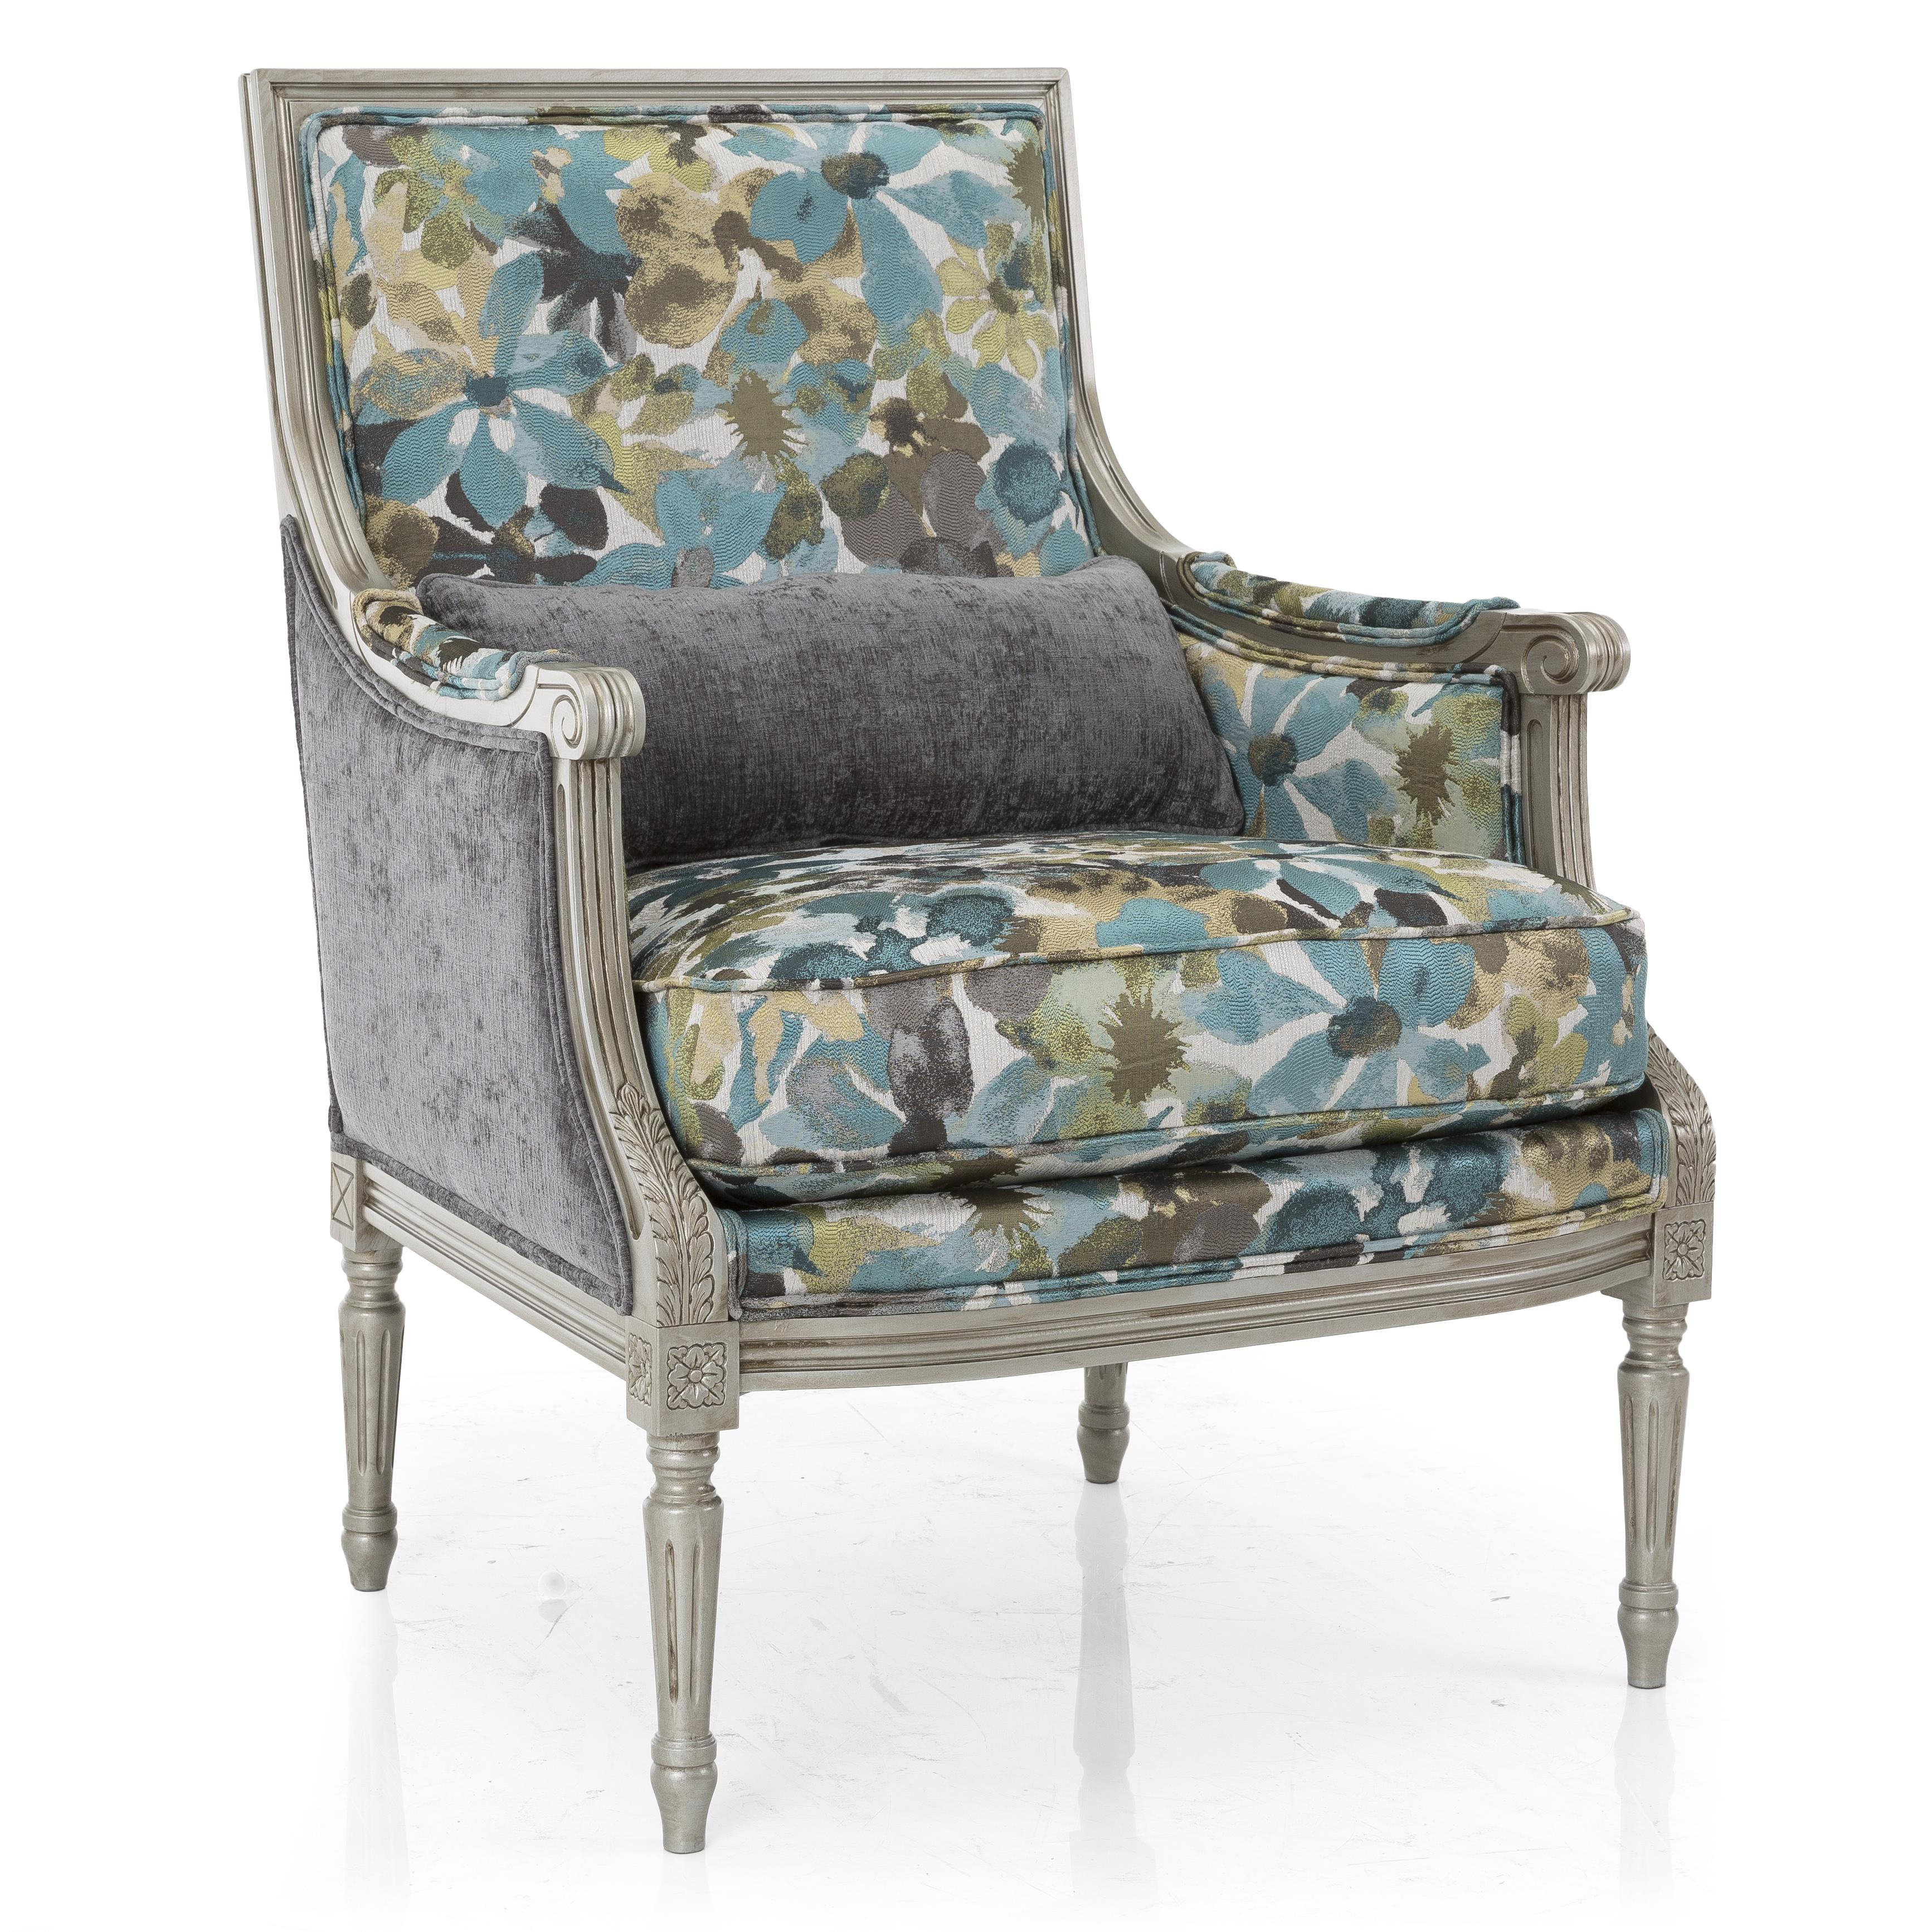 Taelor Designs Accent Chairs Firenze Chair With Exposed